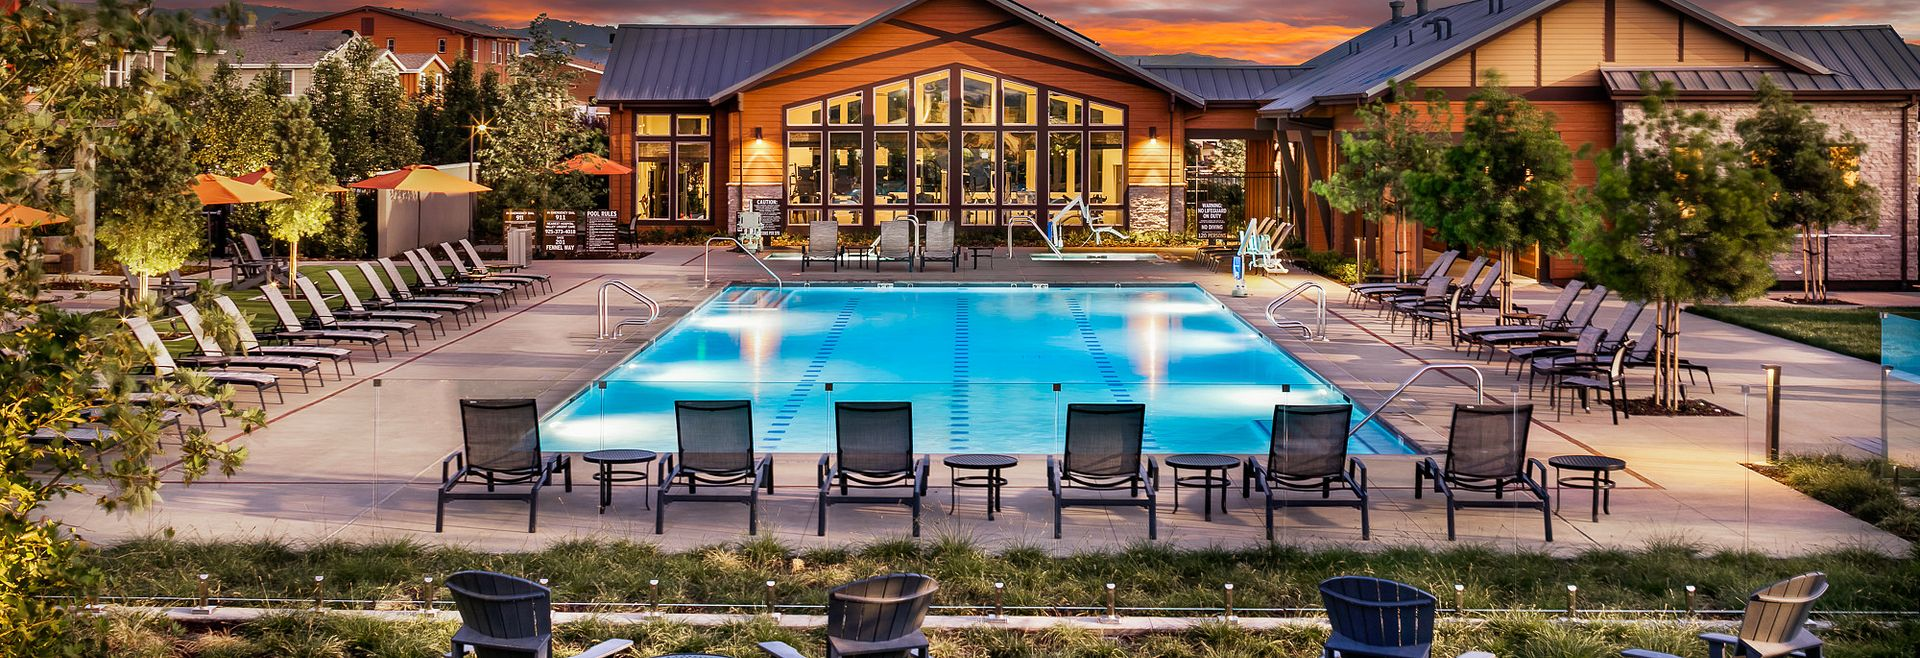 Sage Pool Clubhouse Cabanas Livermore Spas